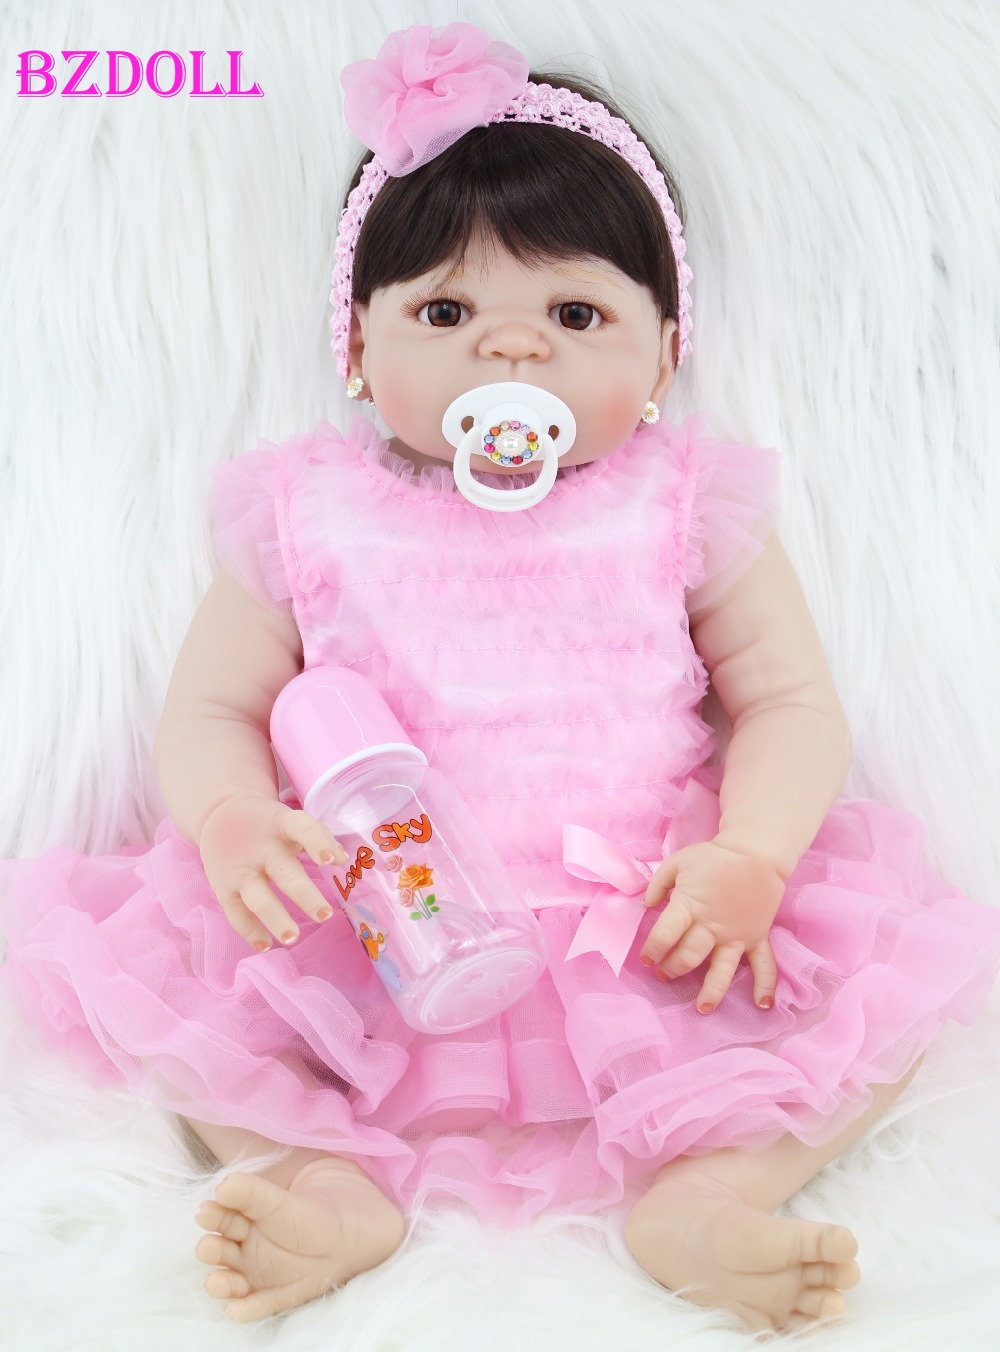 BZDOLL 55cm Full Silicone Reborn Girl Baby Doll Toys Lifelike Newborn Princess Girls Babies Doll Birthday Gift PresentBZDOLL 55cm Full Silicone Reborn Girl Baby Doll Toys Lifelike Newborn Princess Girls Babies Doll Birthday Gift Present